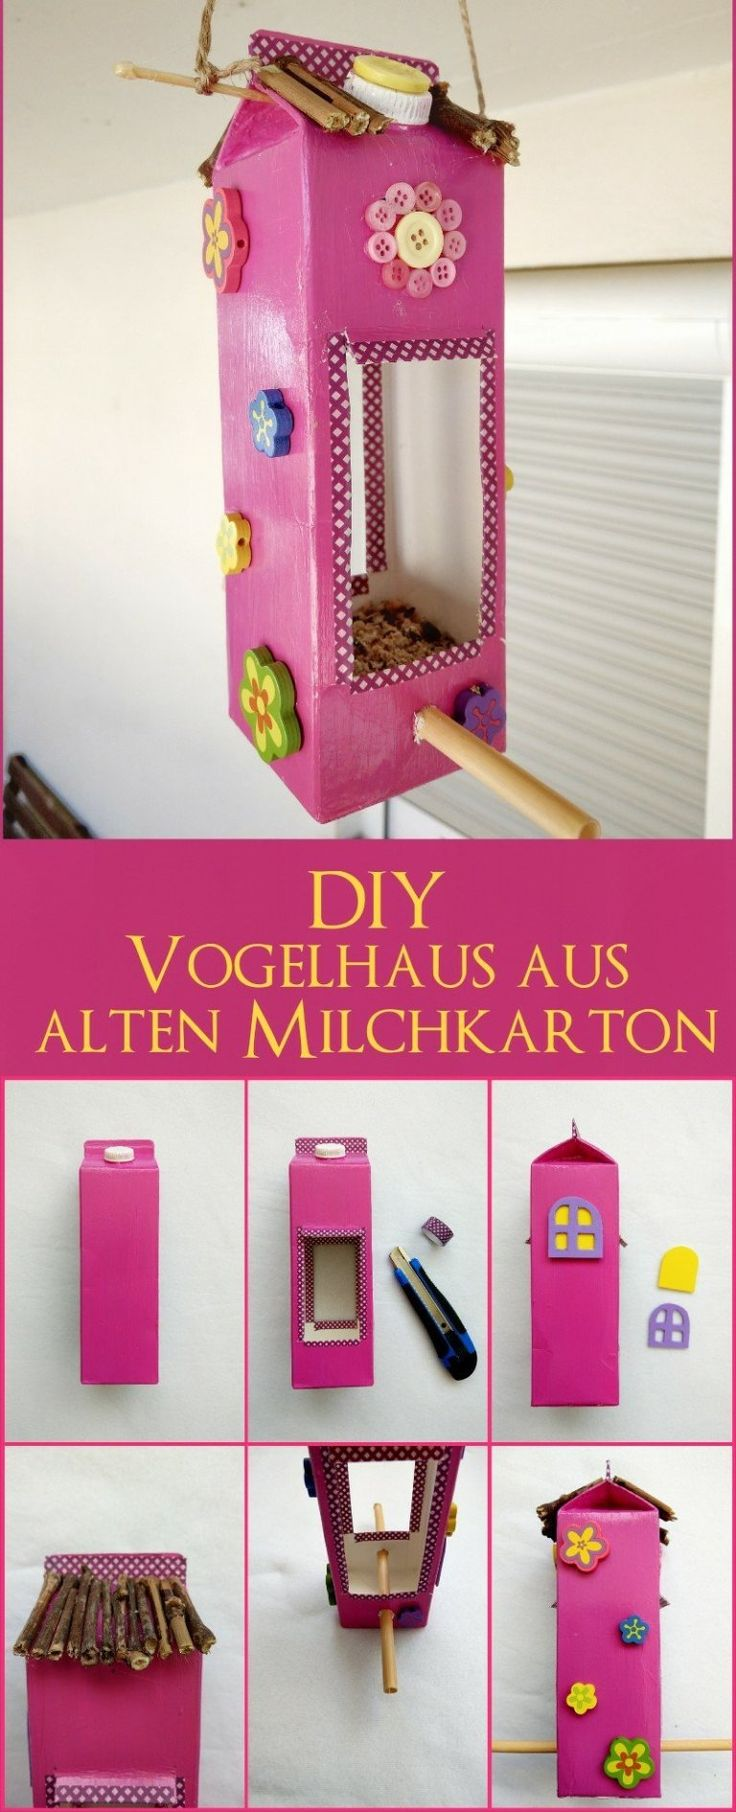 Tinker aviary made of milk cartons – Make a feed house with your children